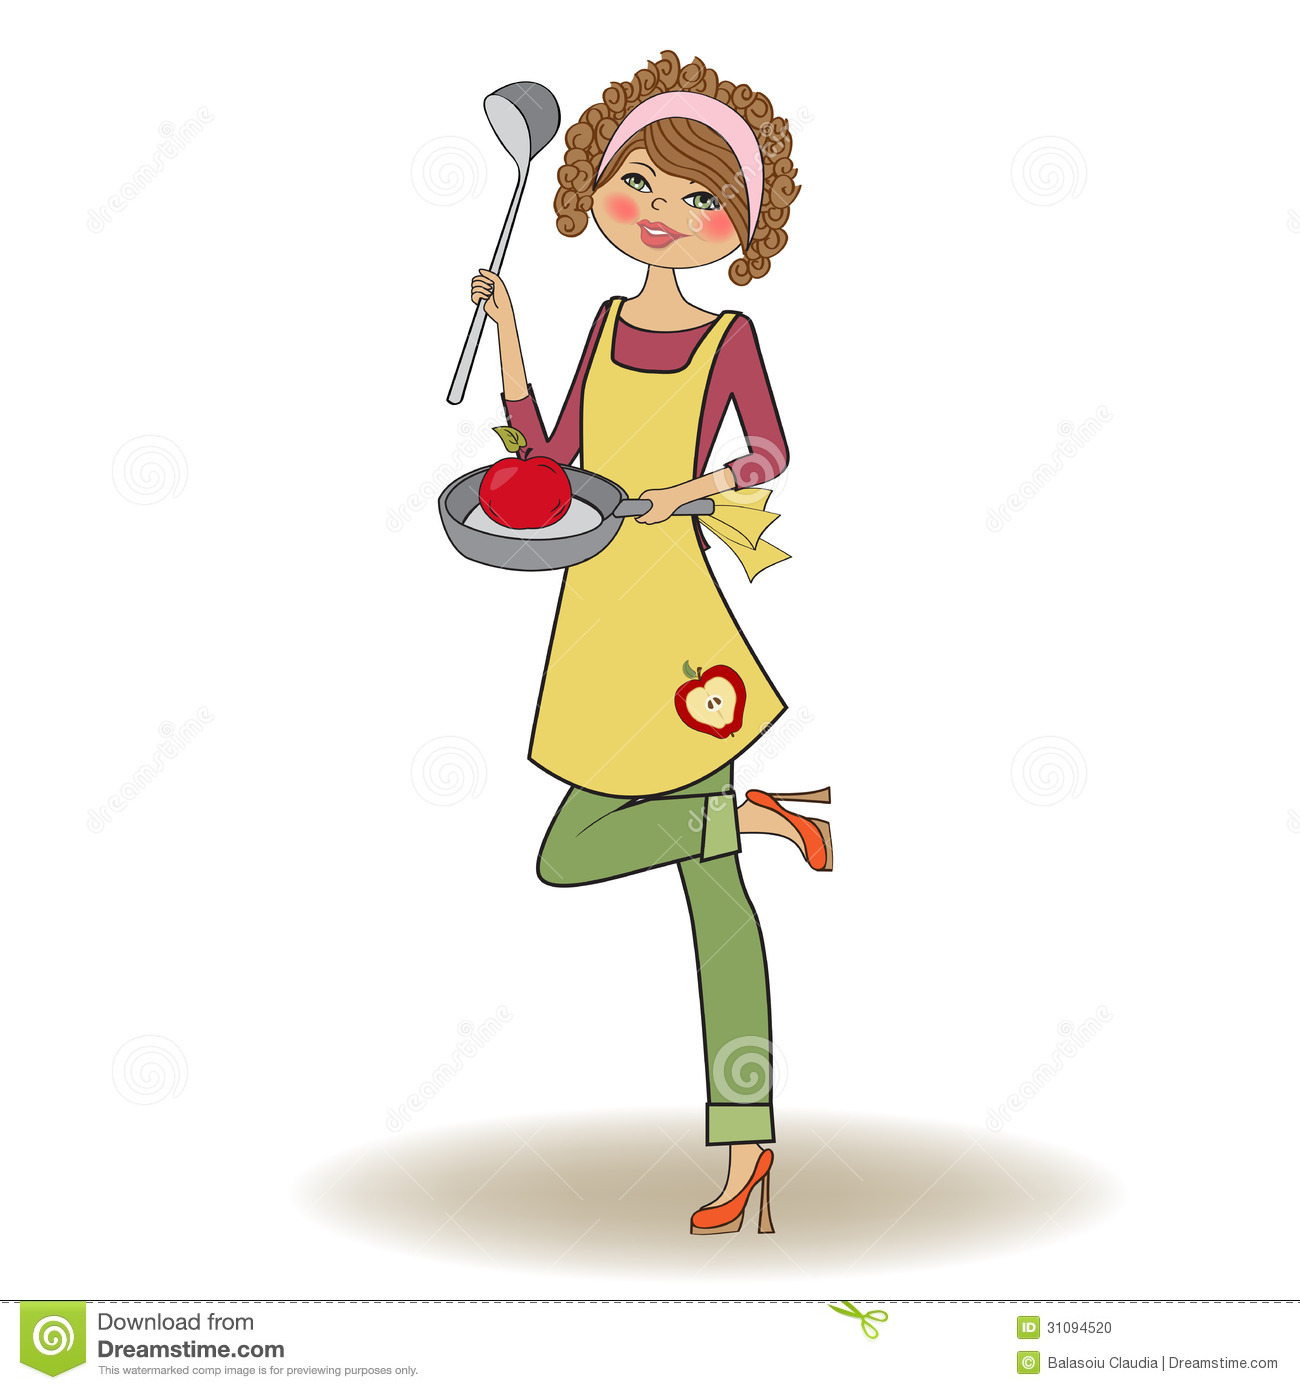 Woman cooking stock vector. Image of housewife, isolated ...